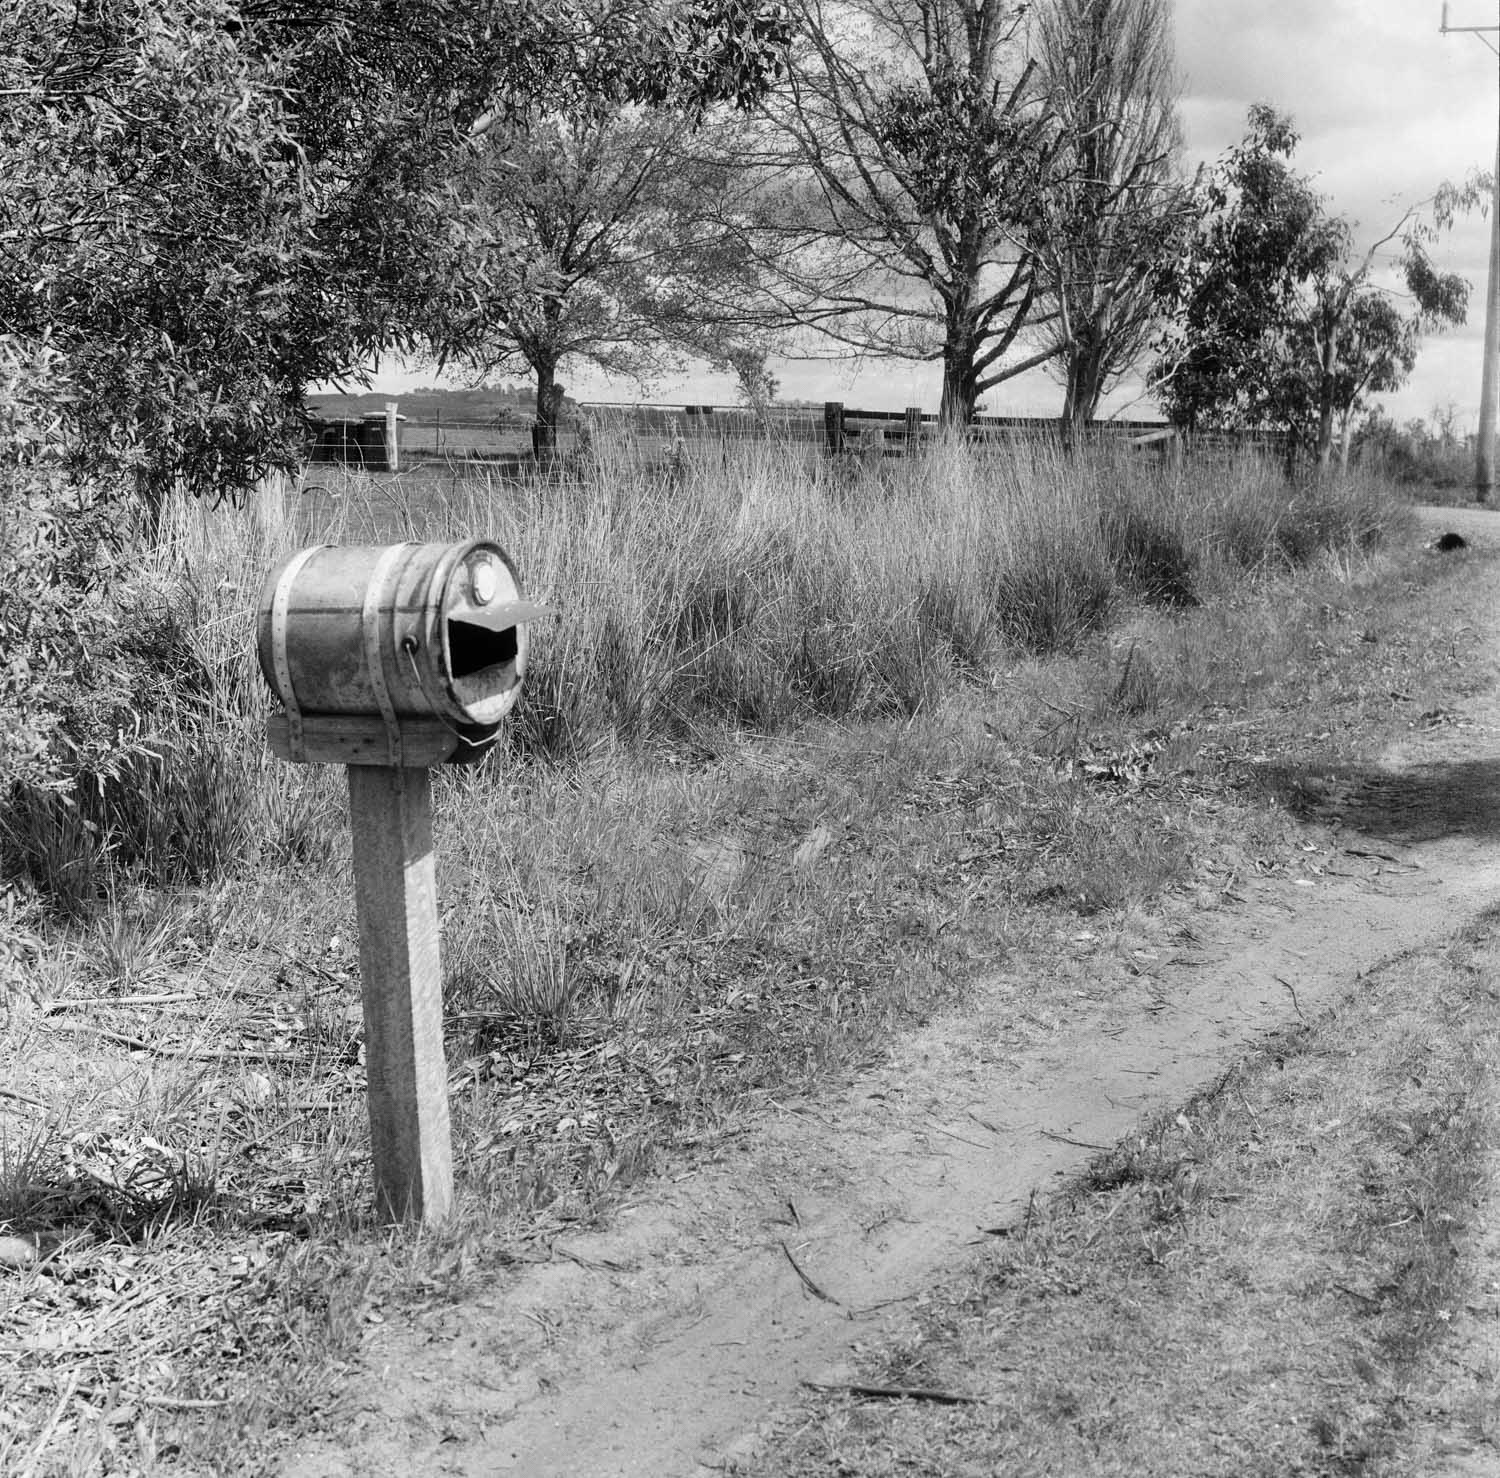 County mailbox, Australian style  Film: Kodak Tri-X Lens: 80mm f/2.8 Exposure:  not recorded  Near Kyneton, Vic, Australia.